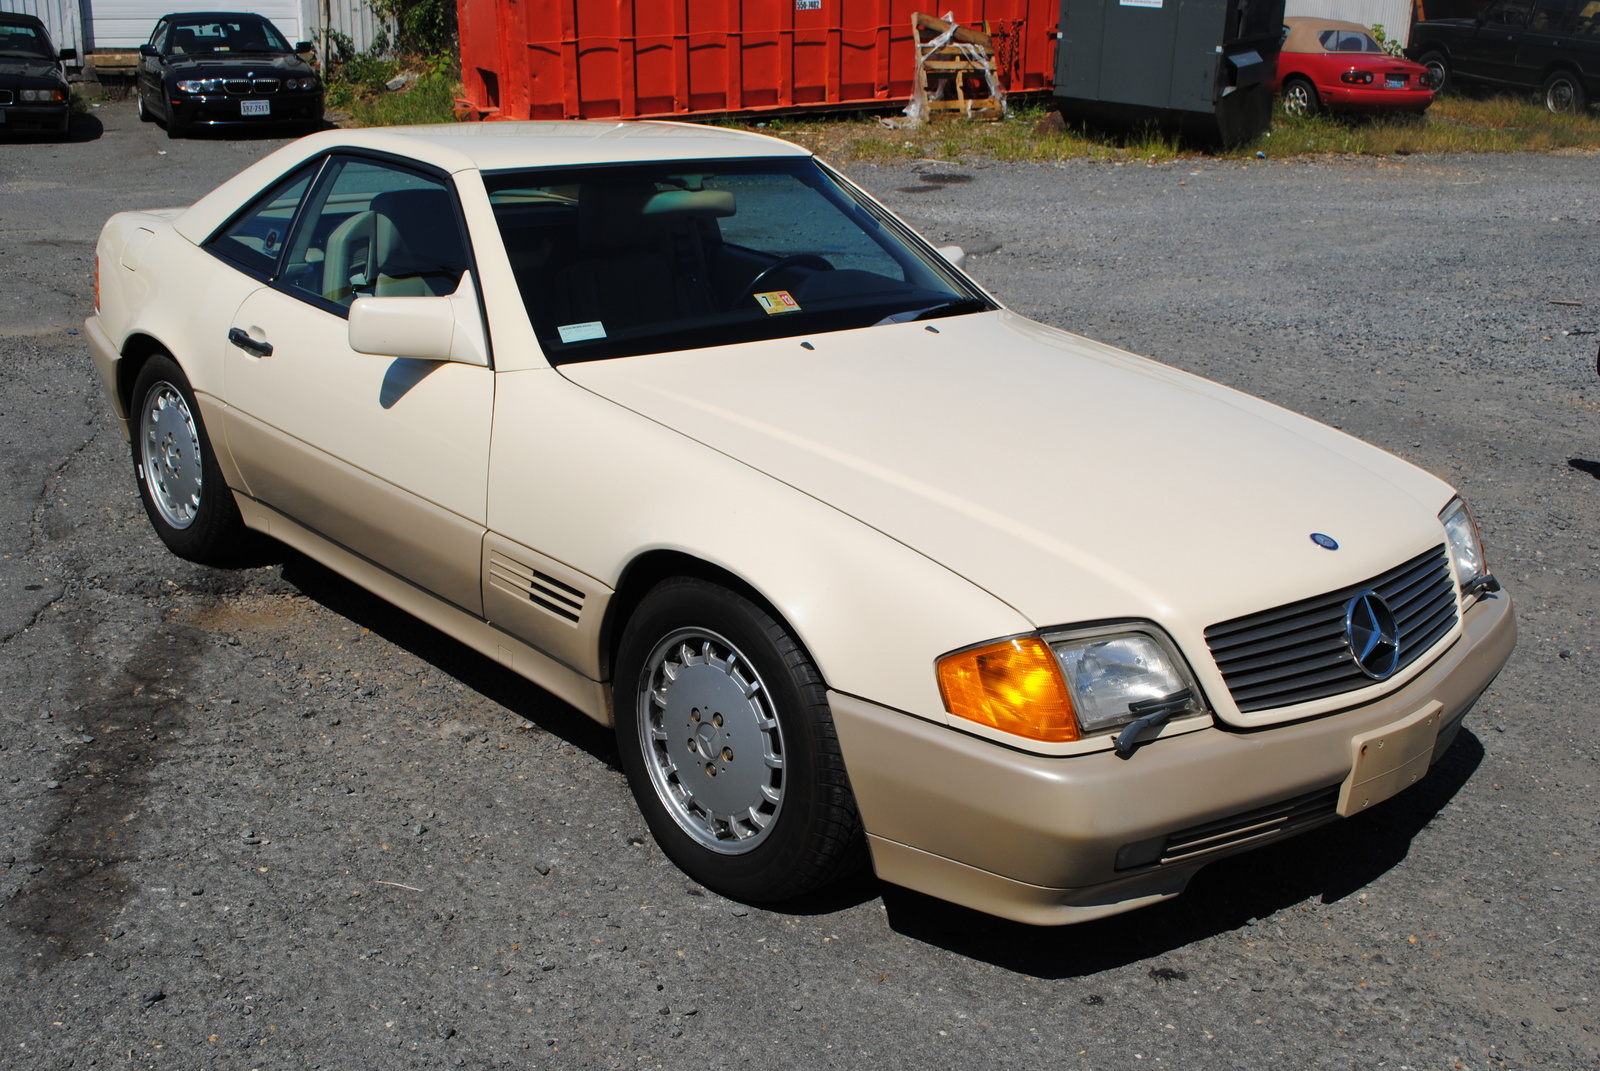 1990 mercedes benz 500 class photos informations for How much is a 1990 mercedes benz worth